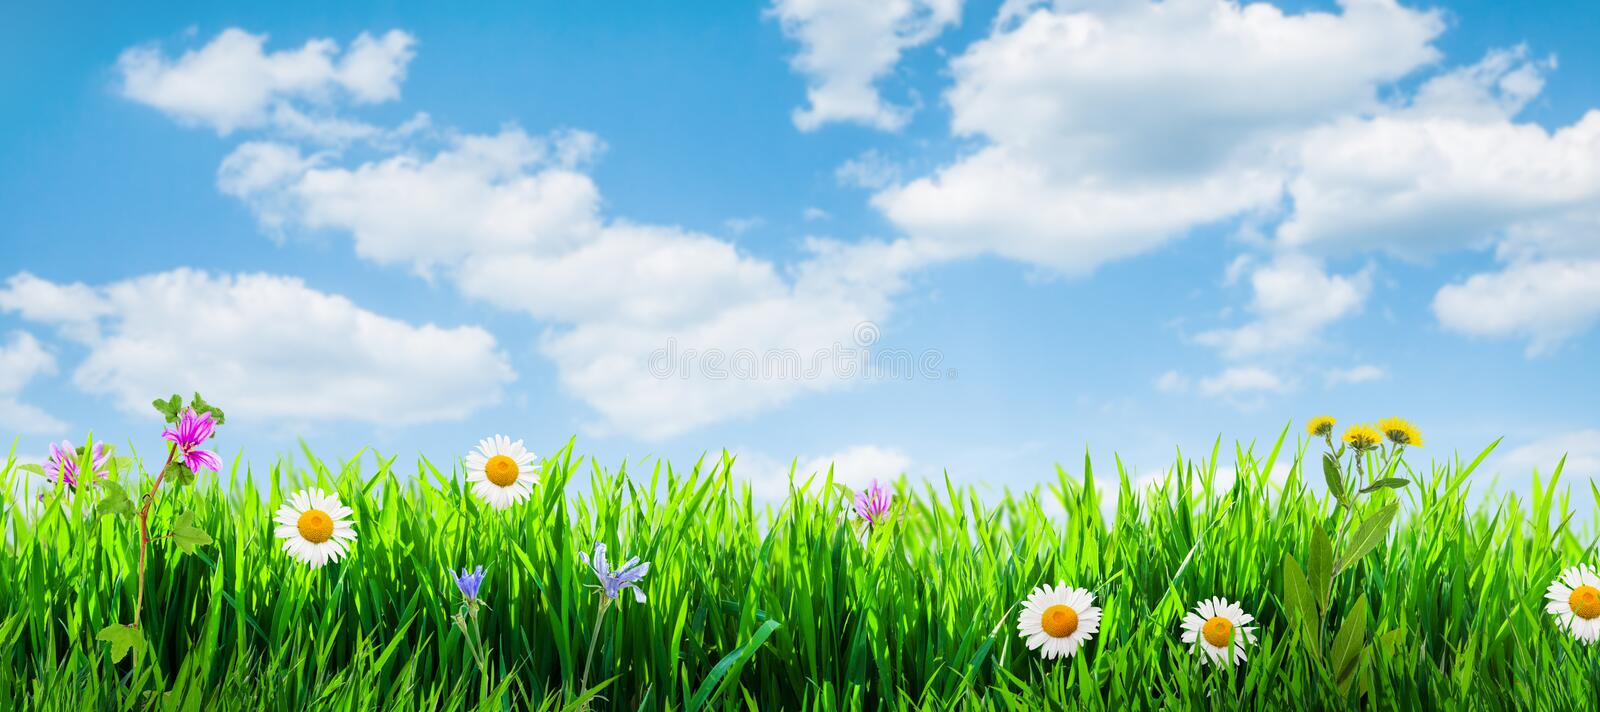 Spring grass background. With flowers and grass